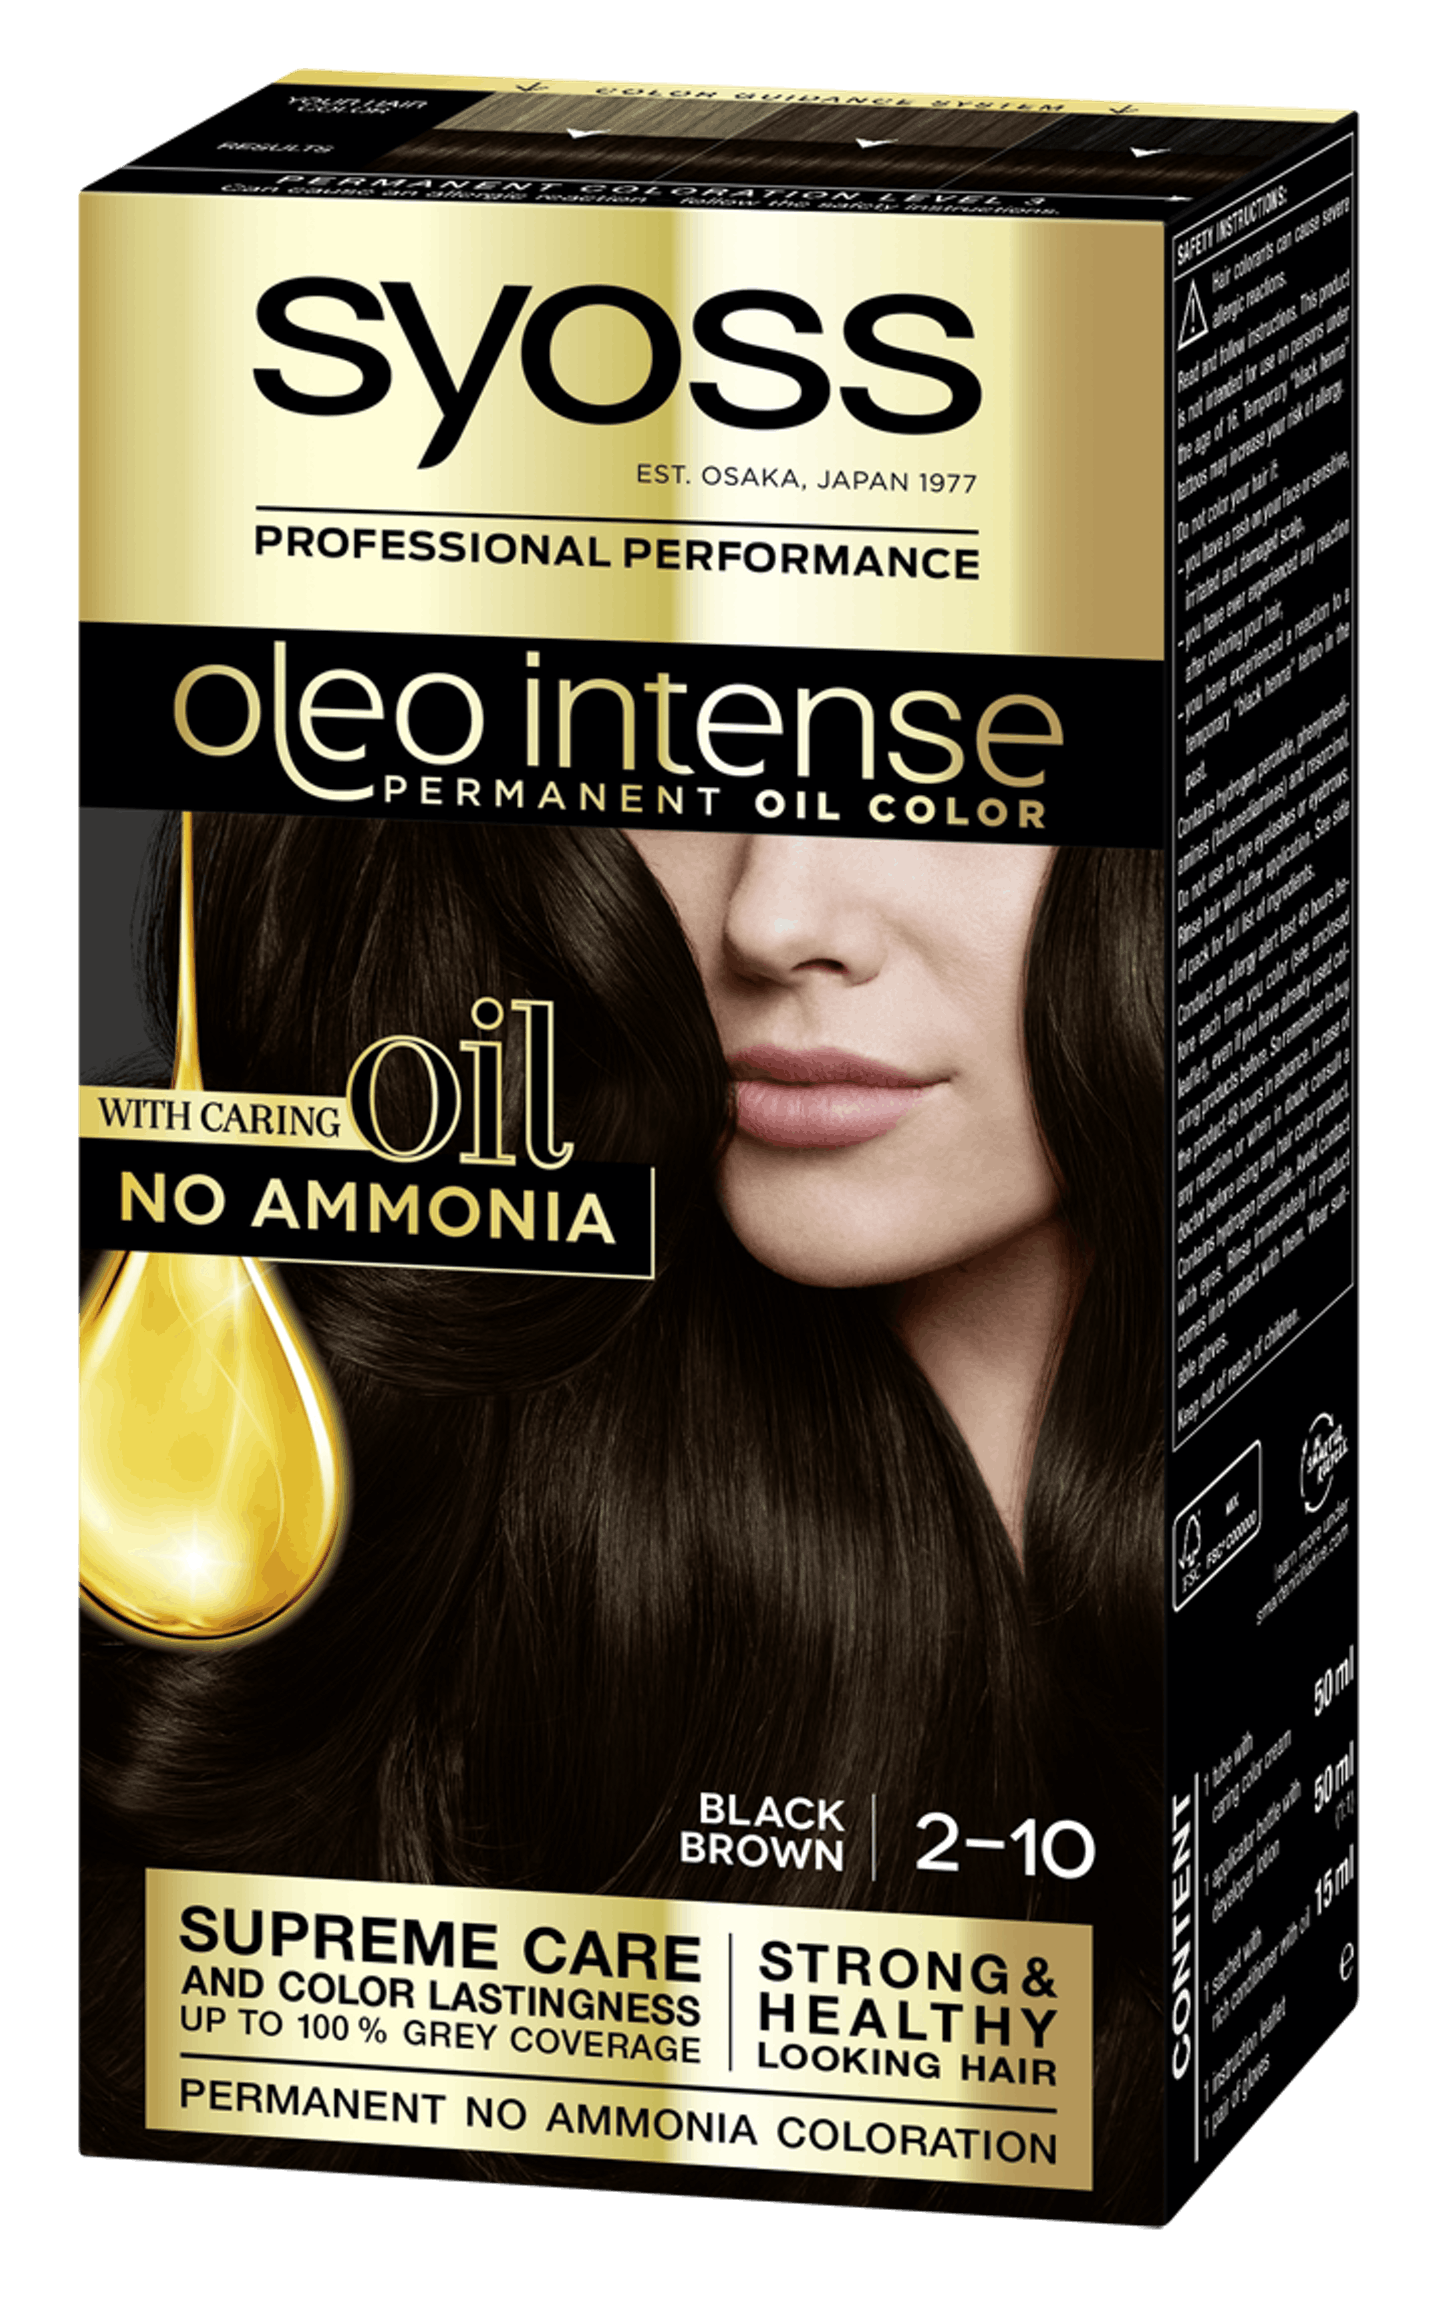 Syoss Oleo Intense Permanent Oil Color 2-10 Black Brown